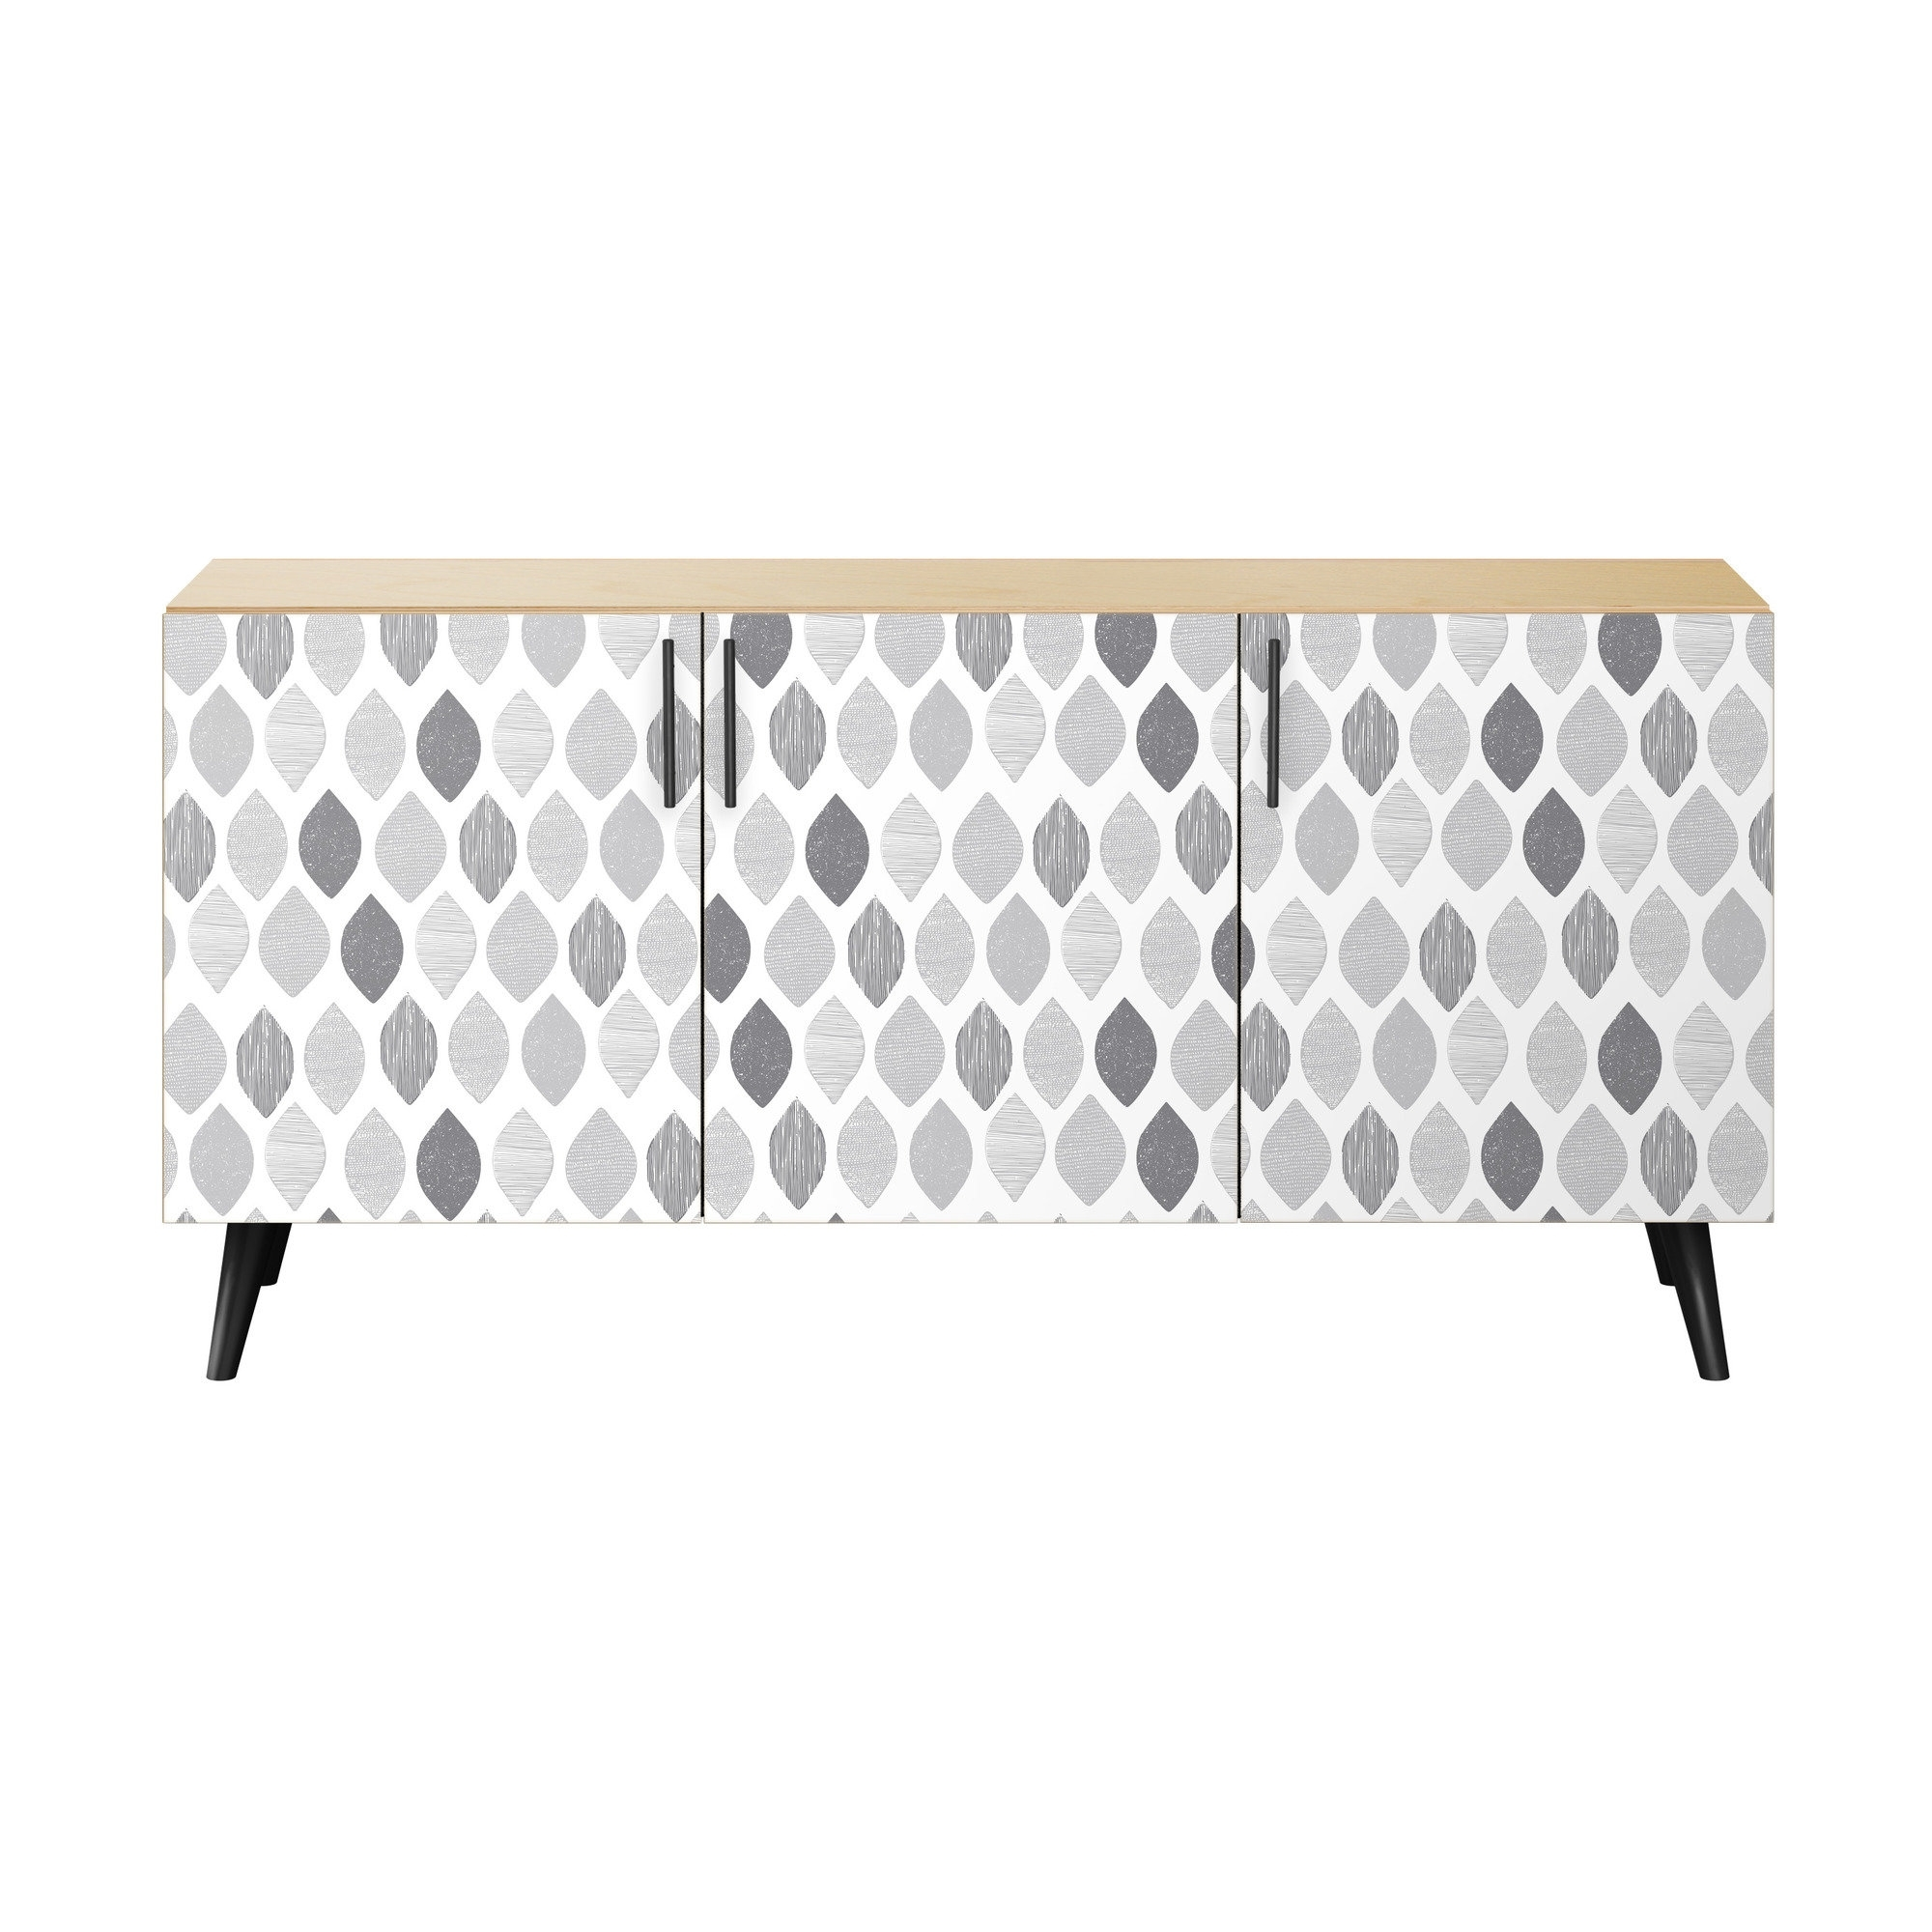 Brayden Studio Mccall Sideboard | Wayfair Throughout Most Current Teagan Sideboards (View 6 of 20)